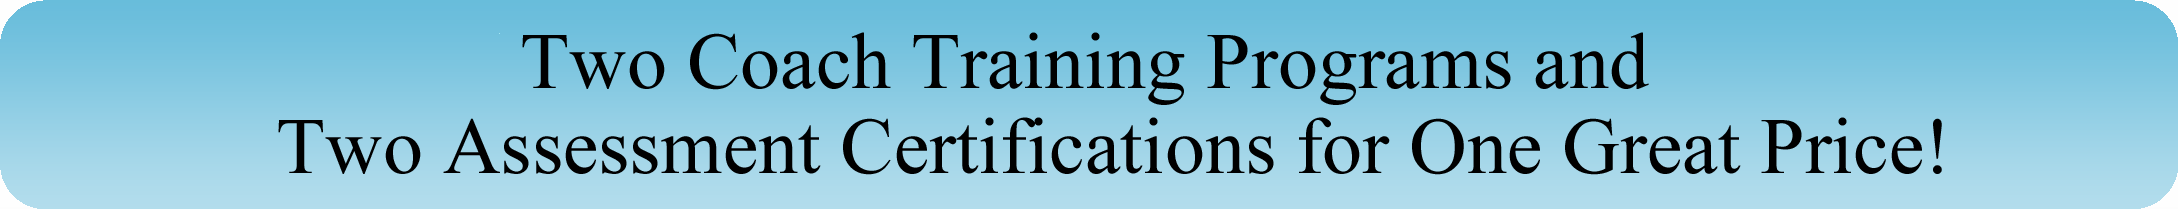 Coaching Certification Specials